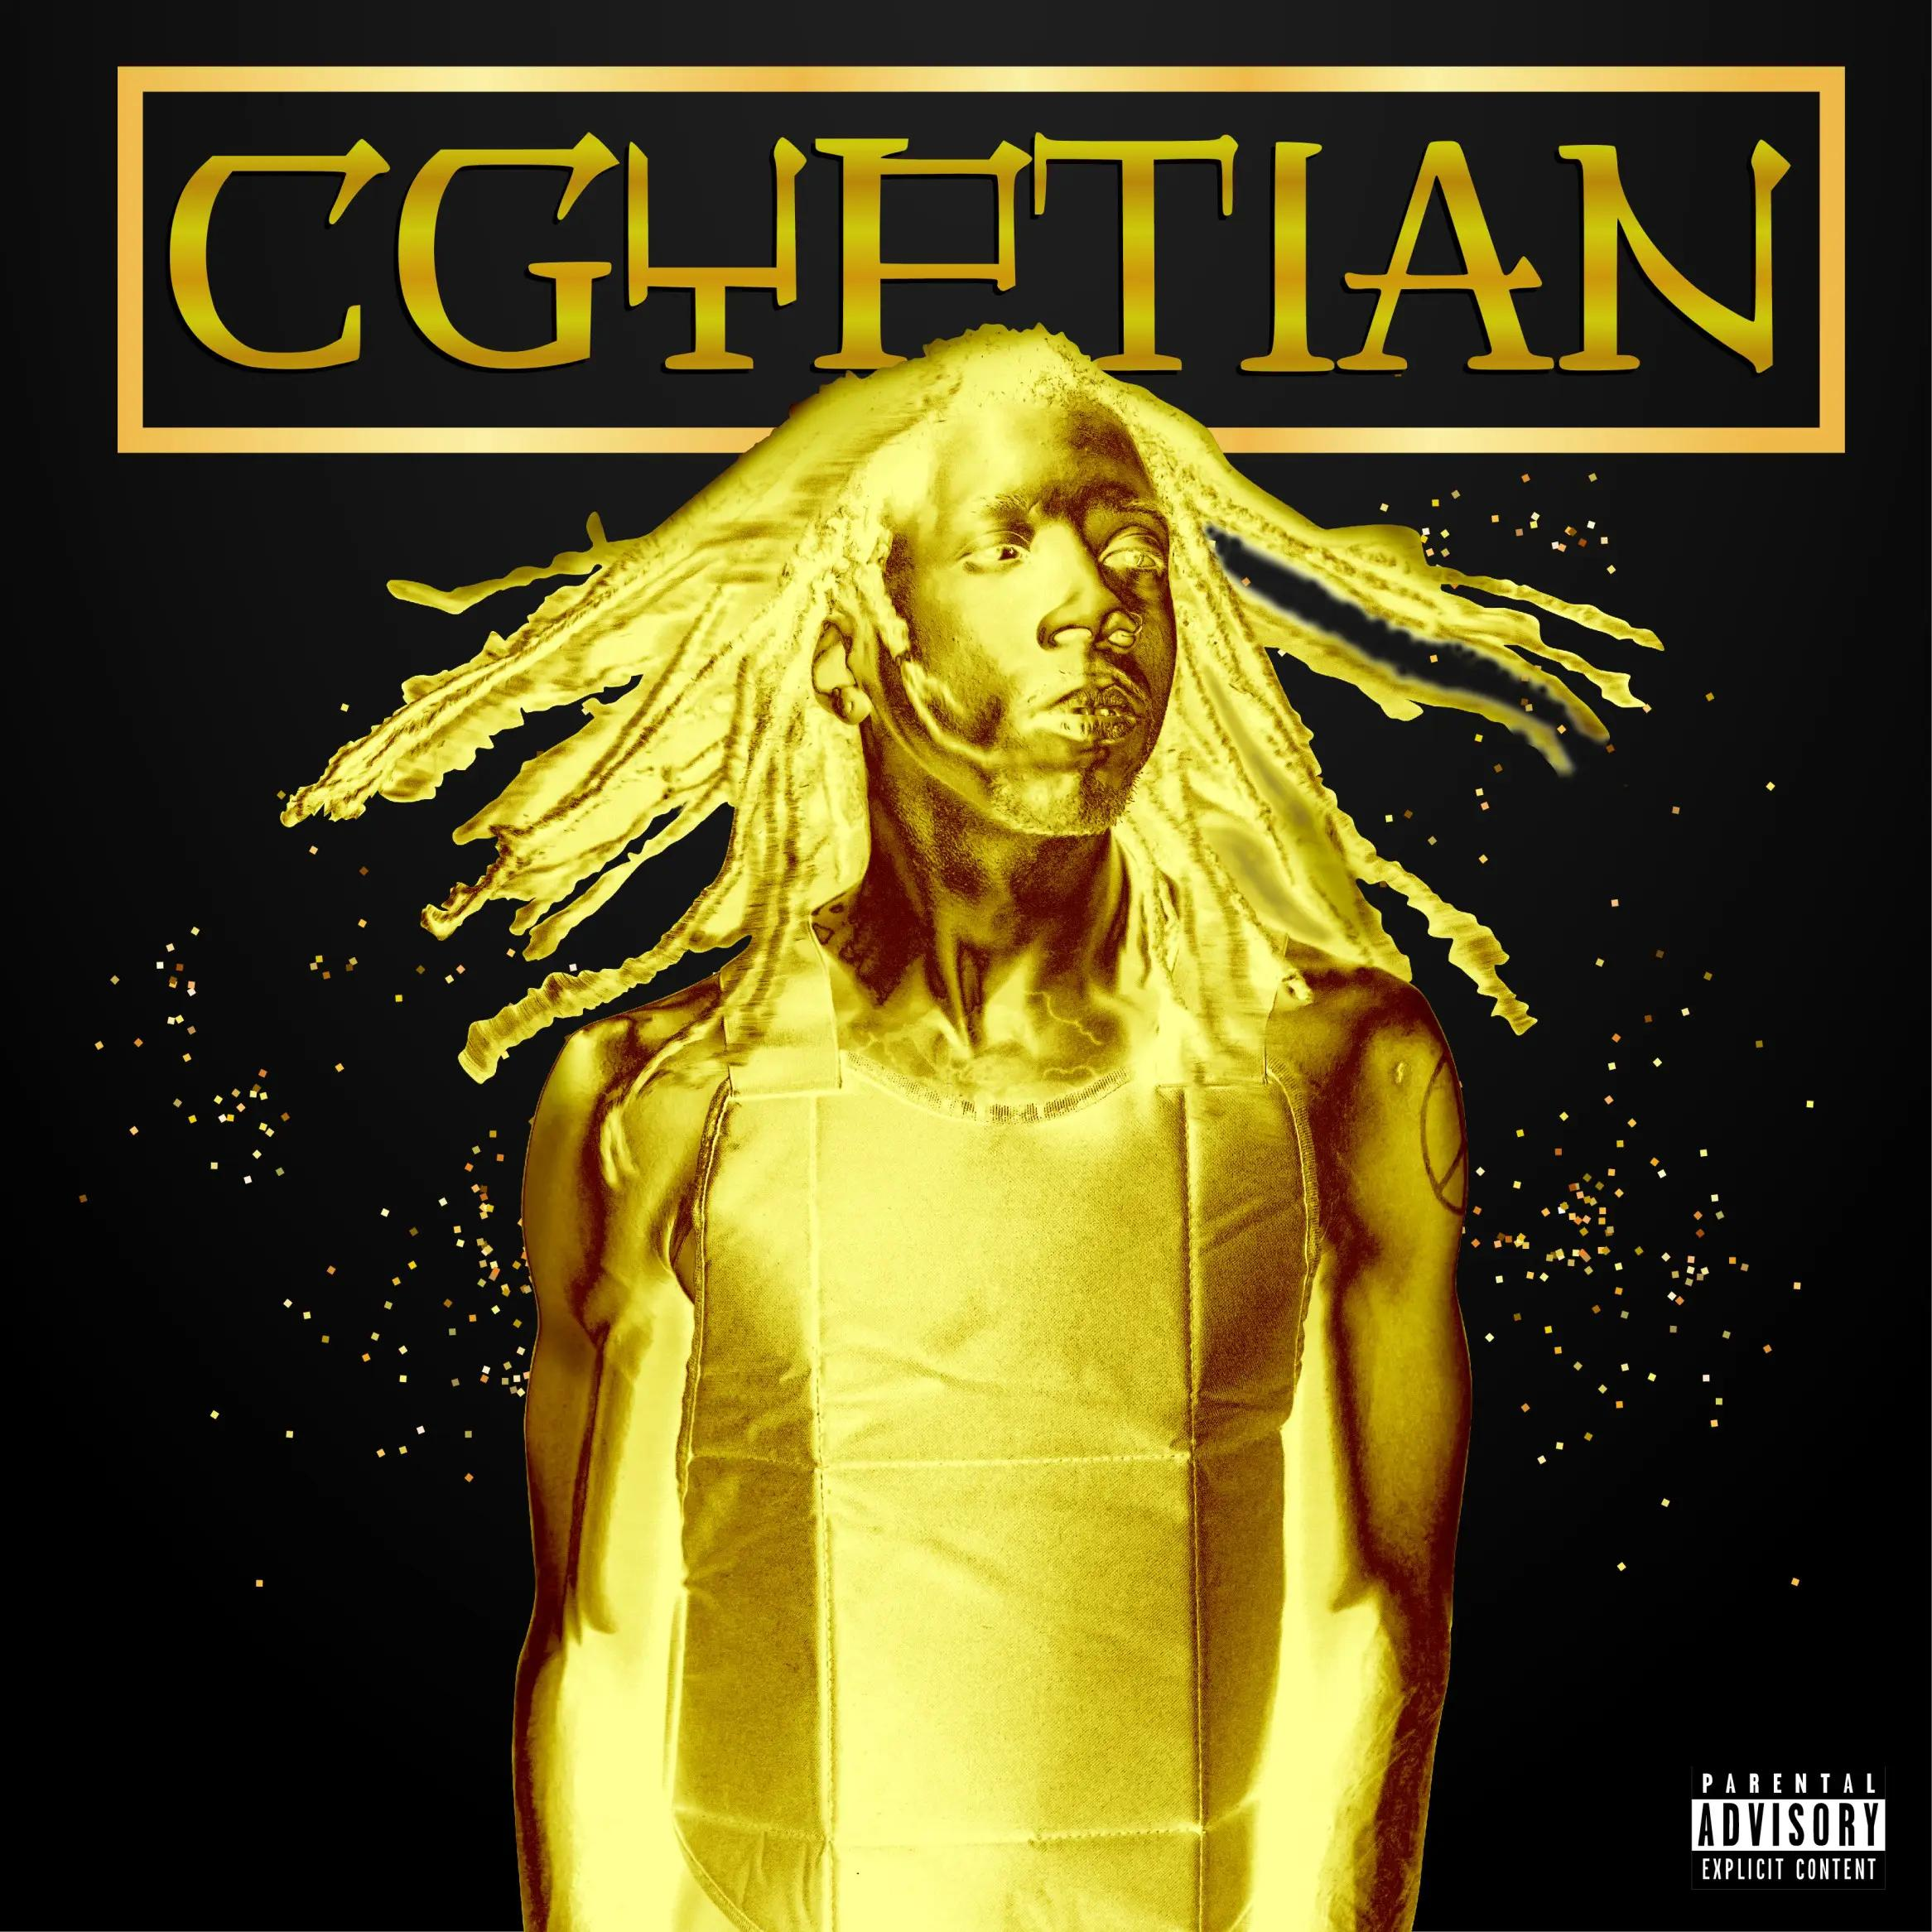 Although isthatCJ Is Known As The Bay Area's Lyricist, He Is Set And Prepared to release his 9th Studio Recorded Album, Cgyptian, And Plans On Approaching The Industry, Again With His New Experimental Hip-Hop Sounds And Tunes.